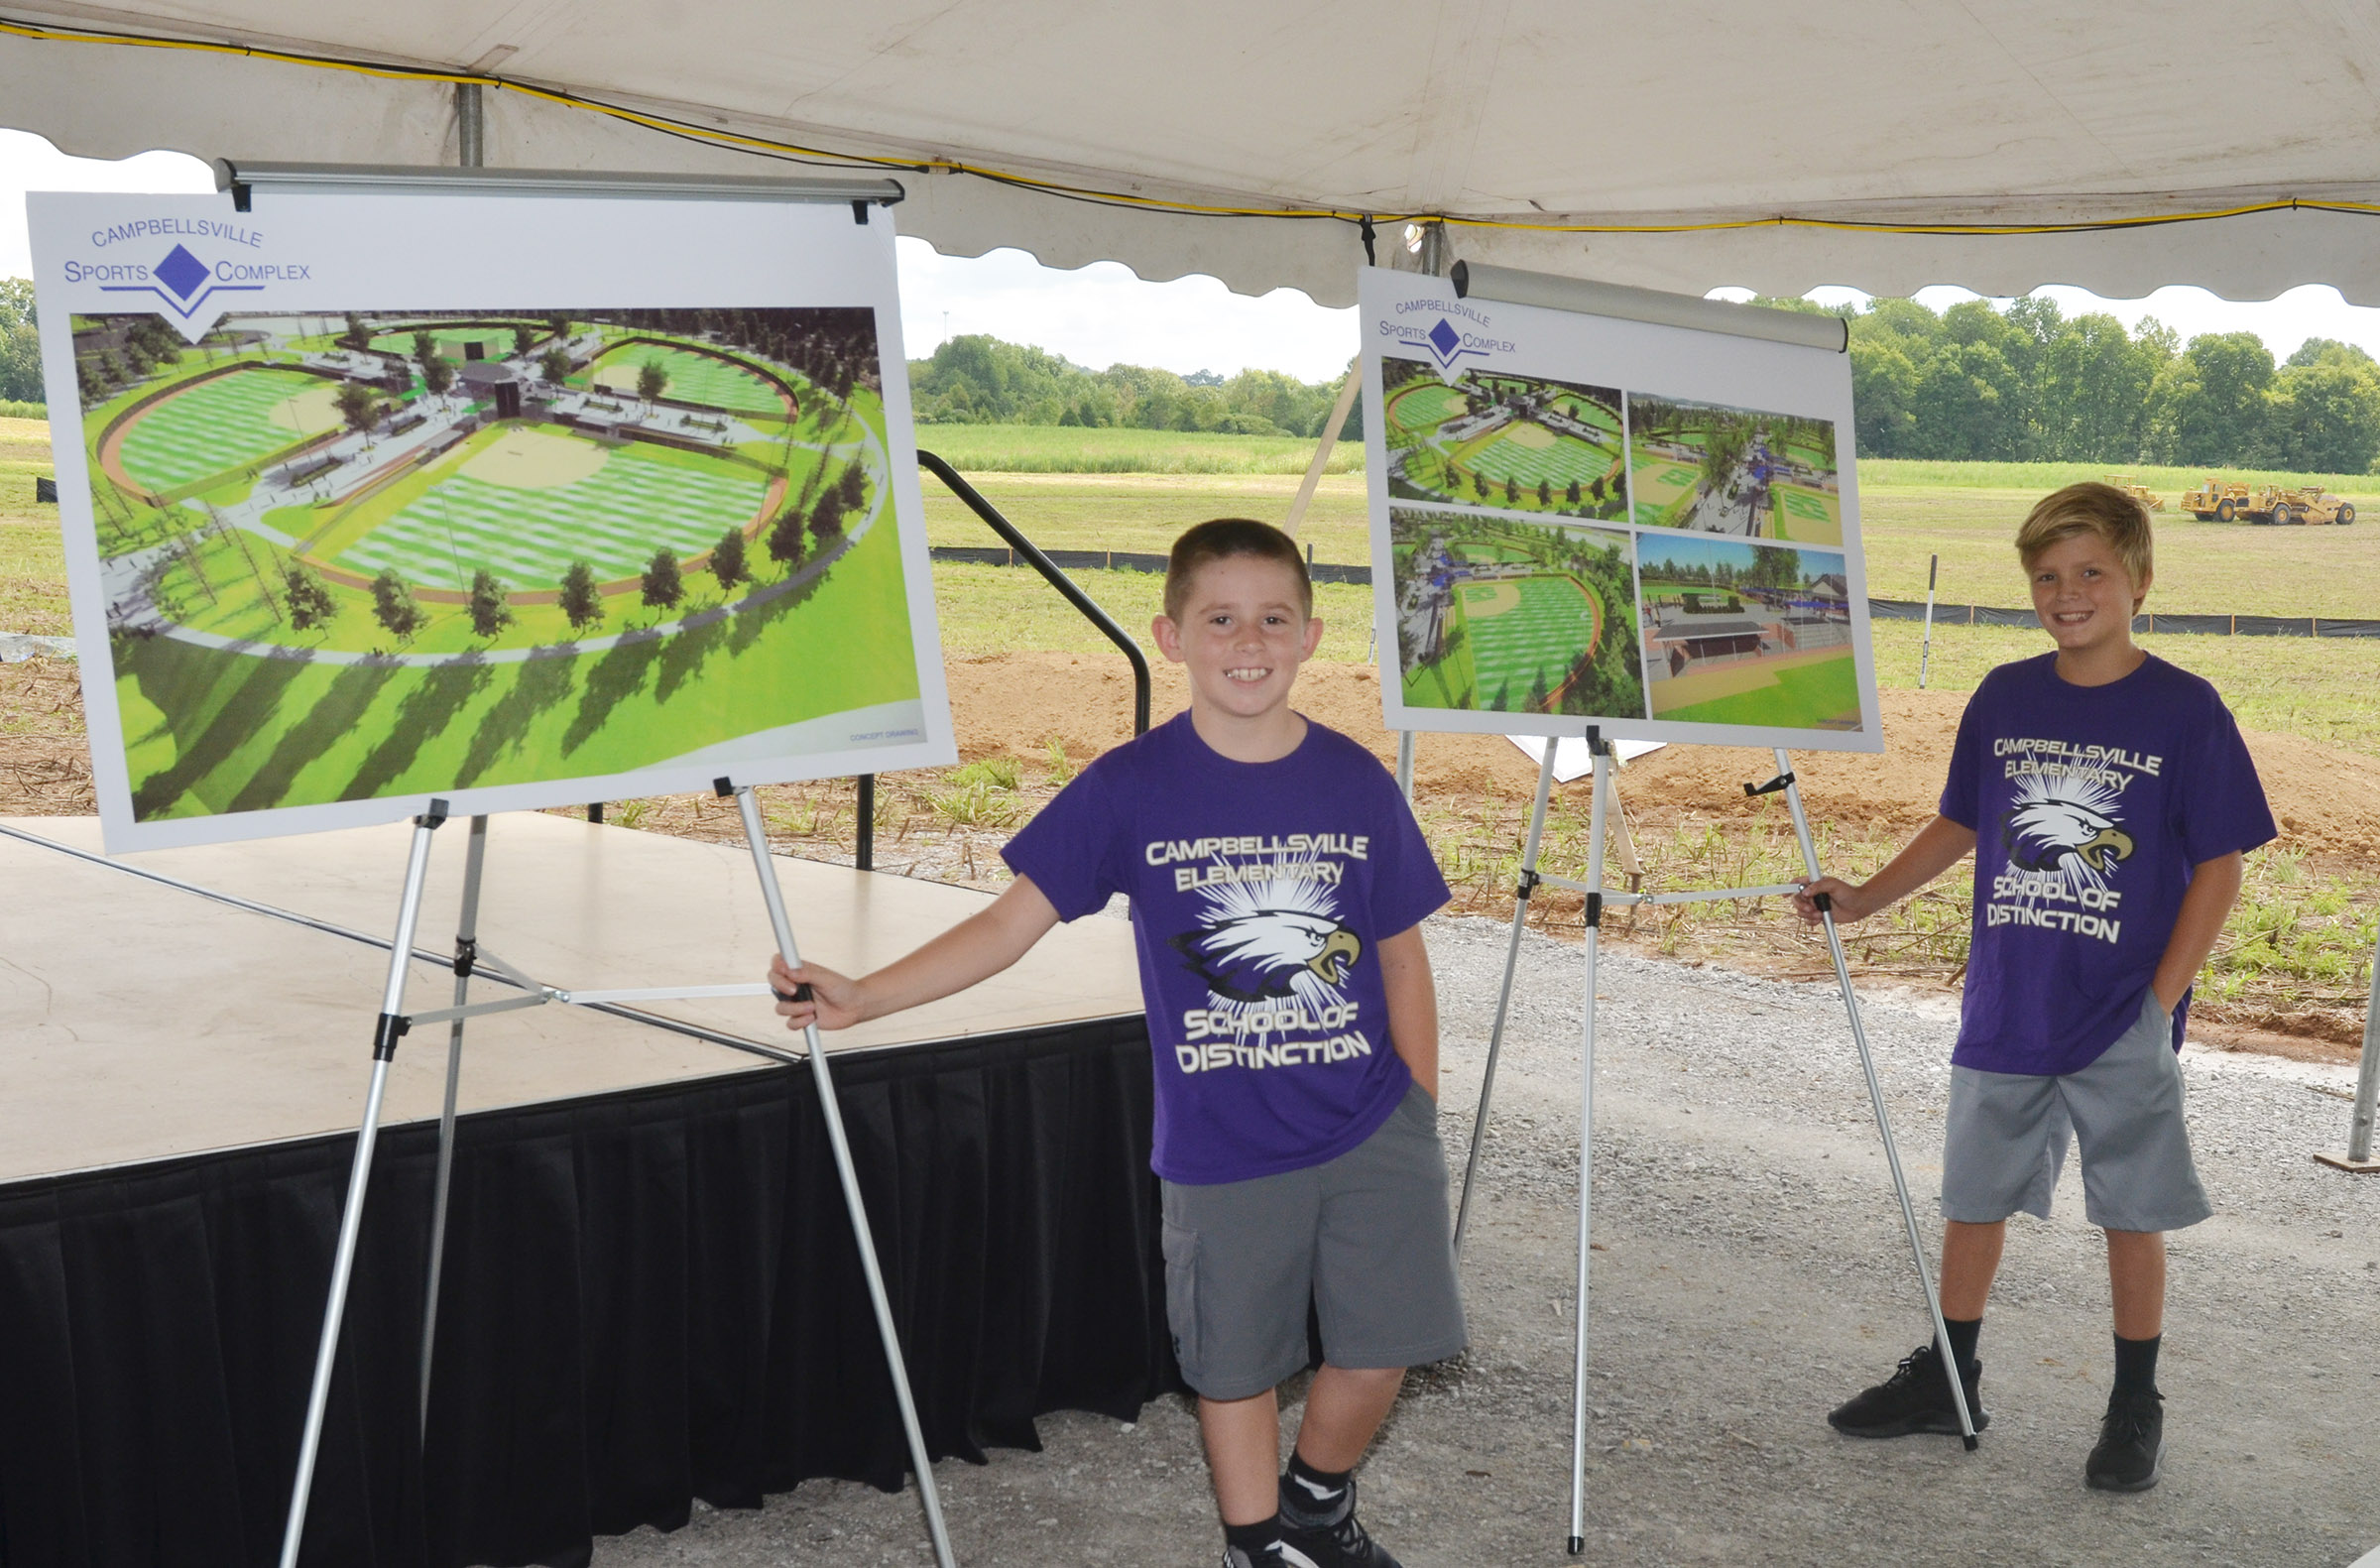 CES third-graders Lanigan Price, at left, and Emerson Gowin hold drawings of the Campbellsville Sports Complex.